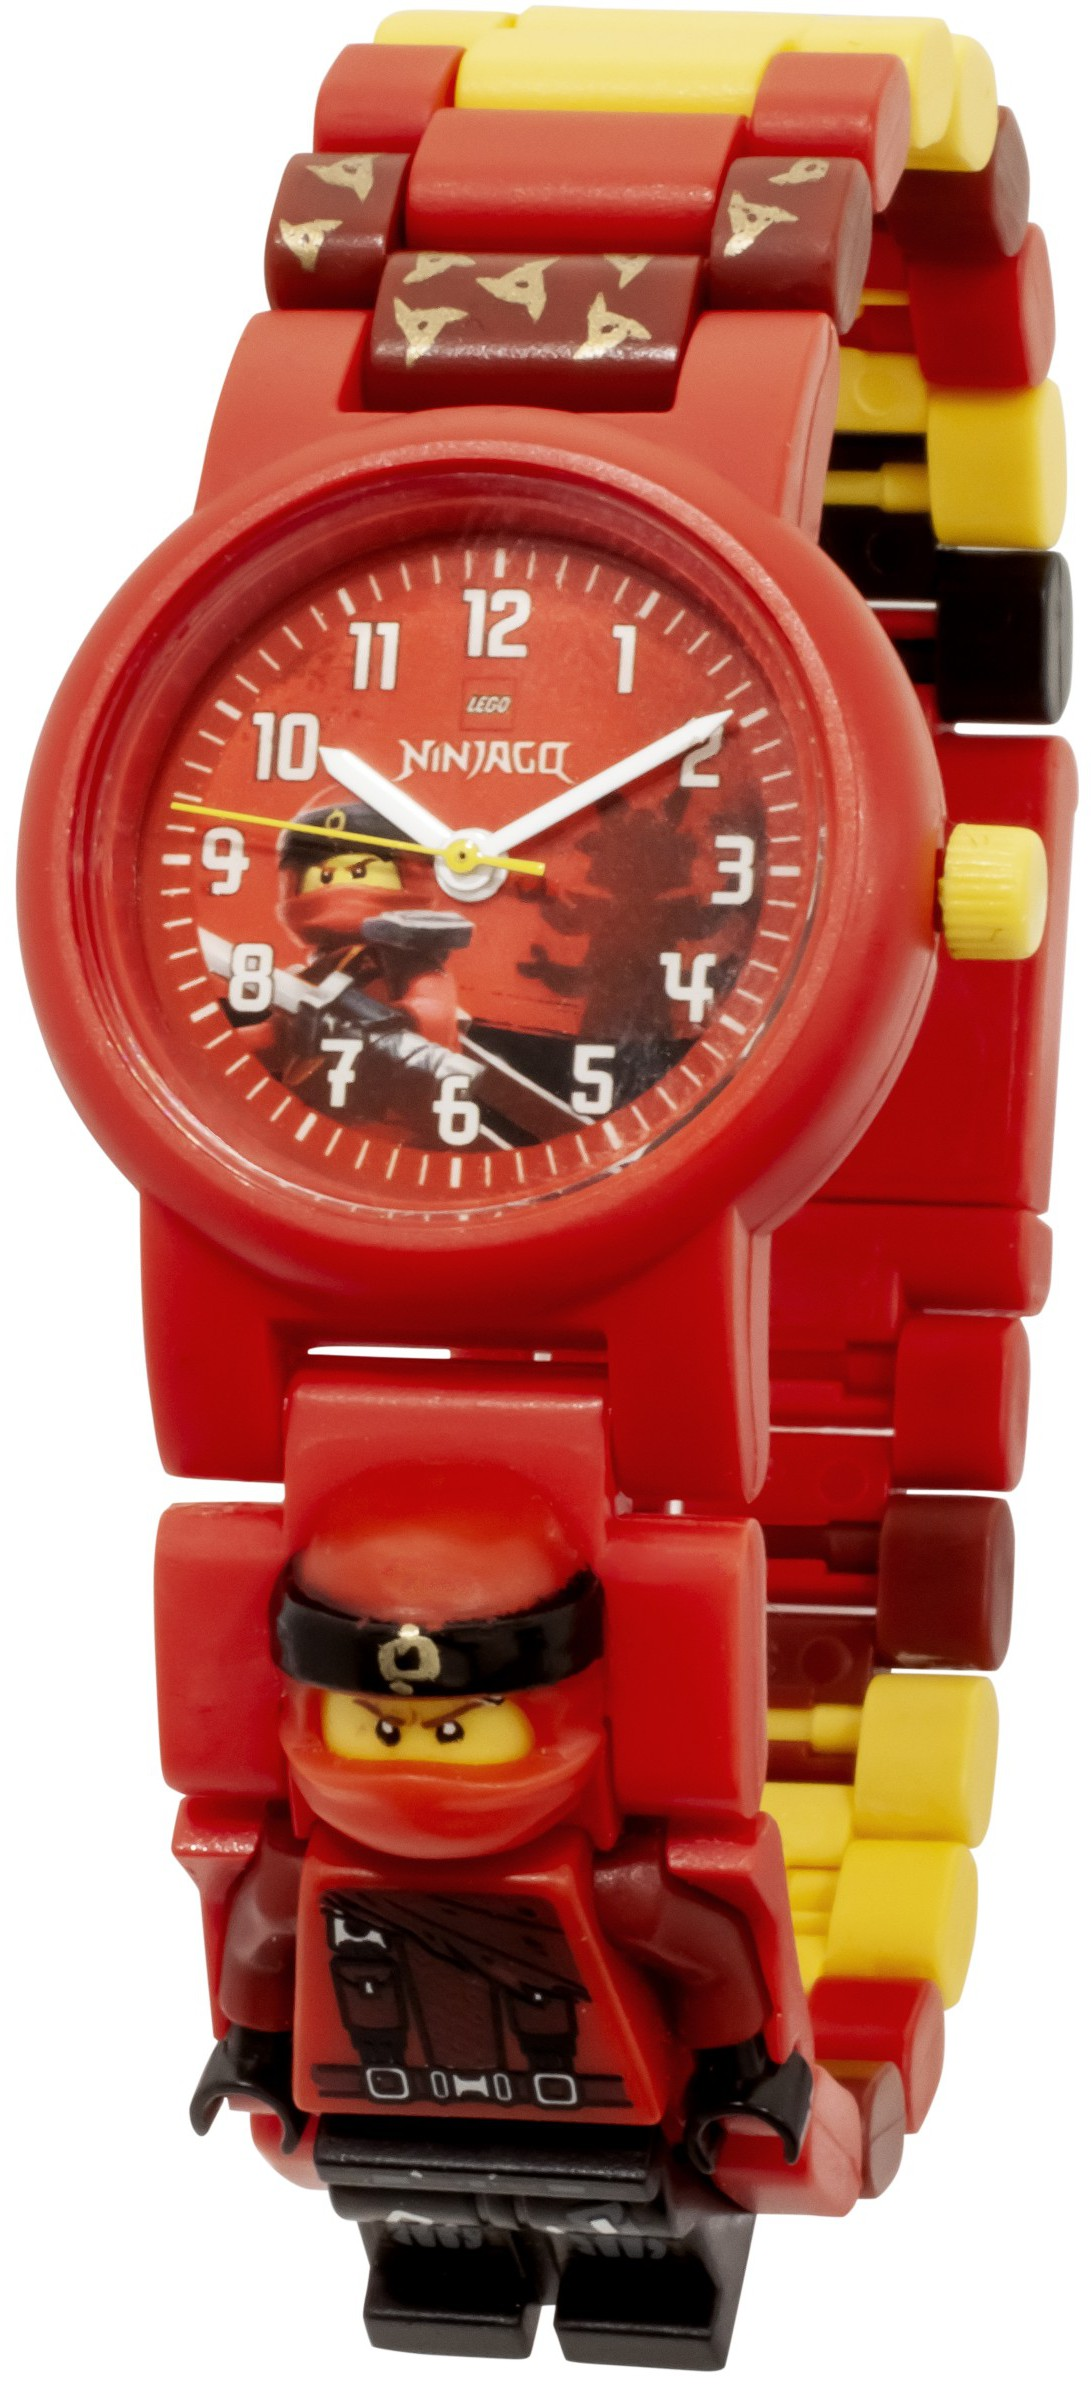 LEGO Ninjago - Kai Minifigure Link Buildable Watch - Heromic 26854313d7684